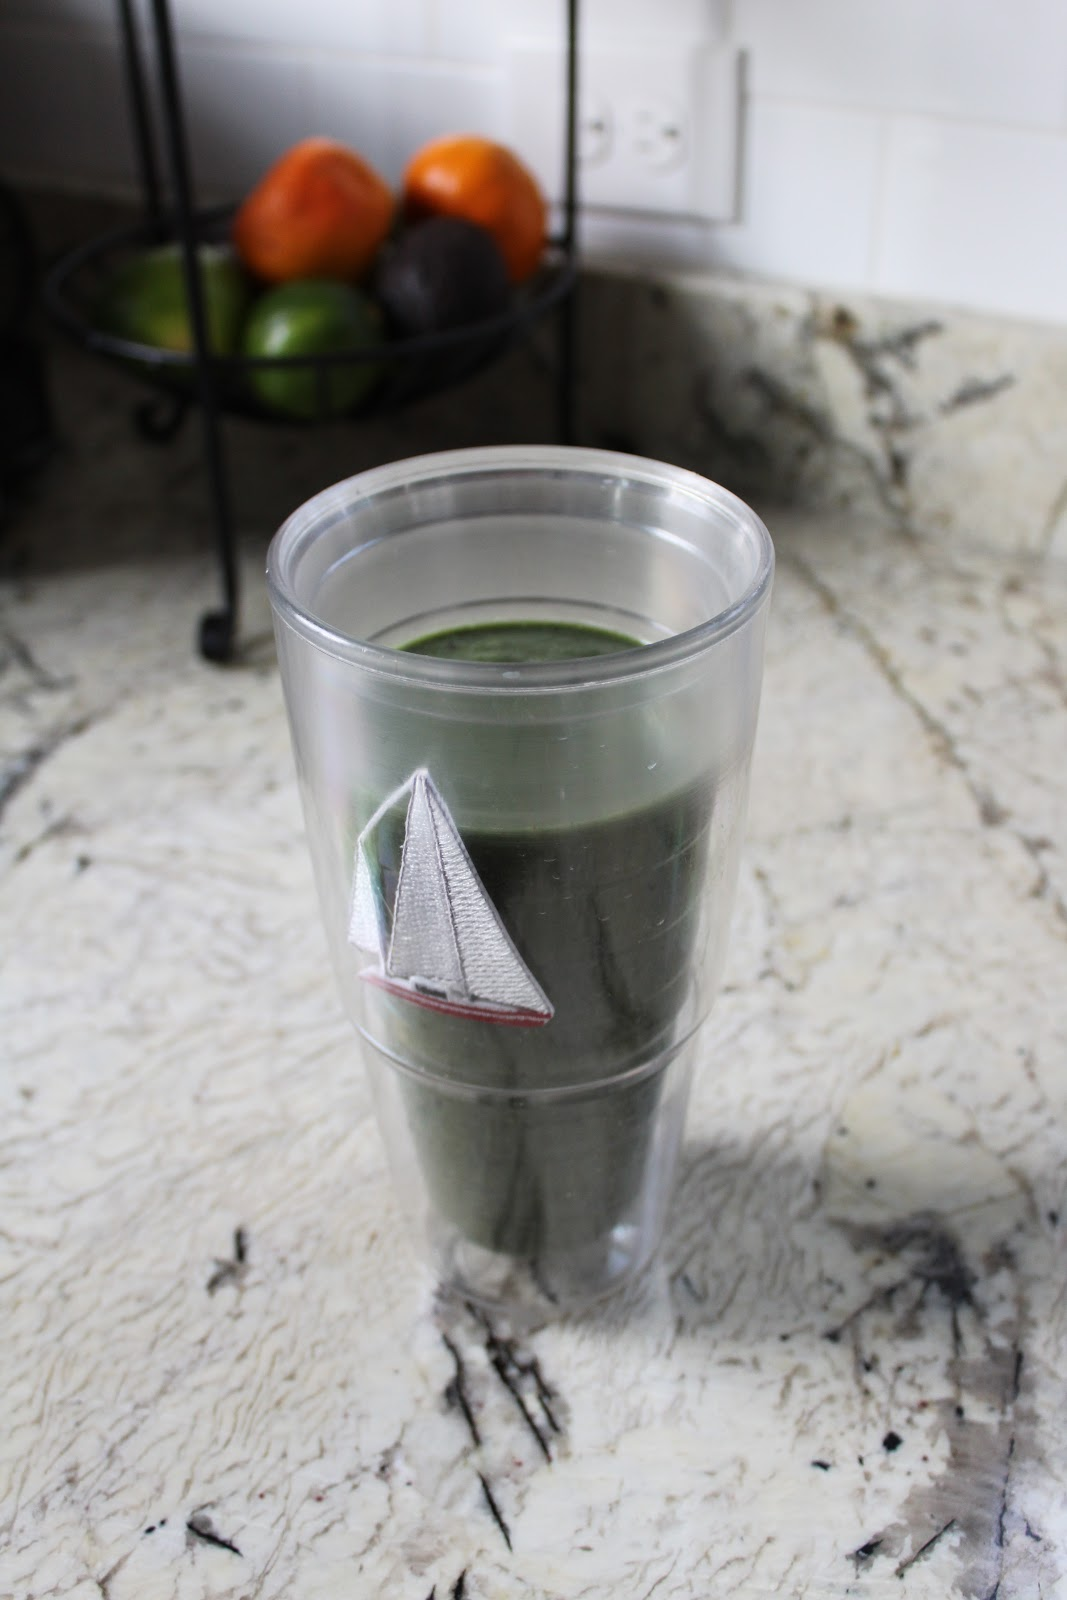 green smoothie finished in cup